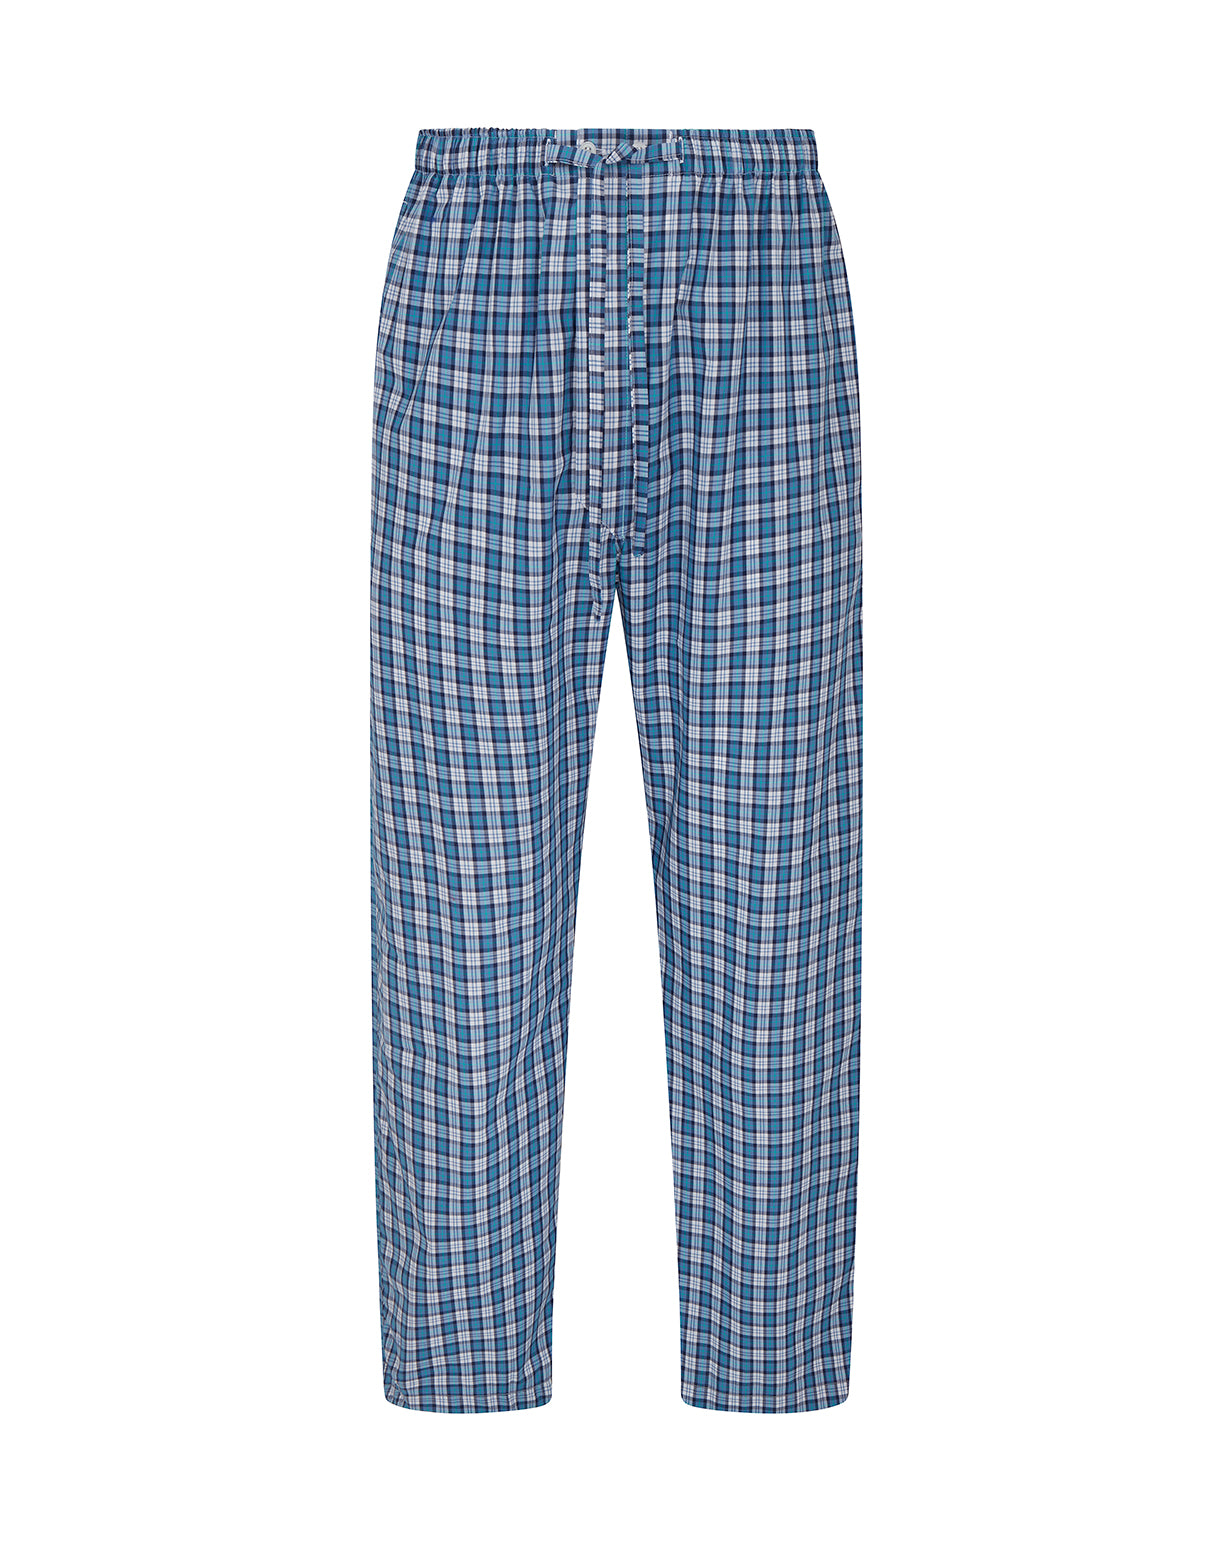 Men's Classic Cotton Pyjama Trousers - A276